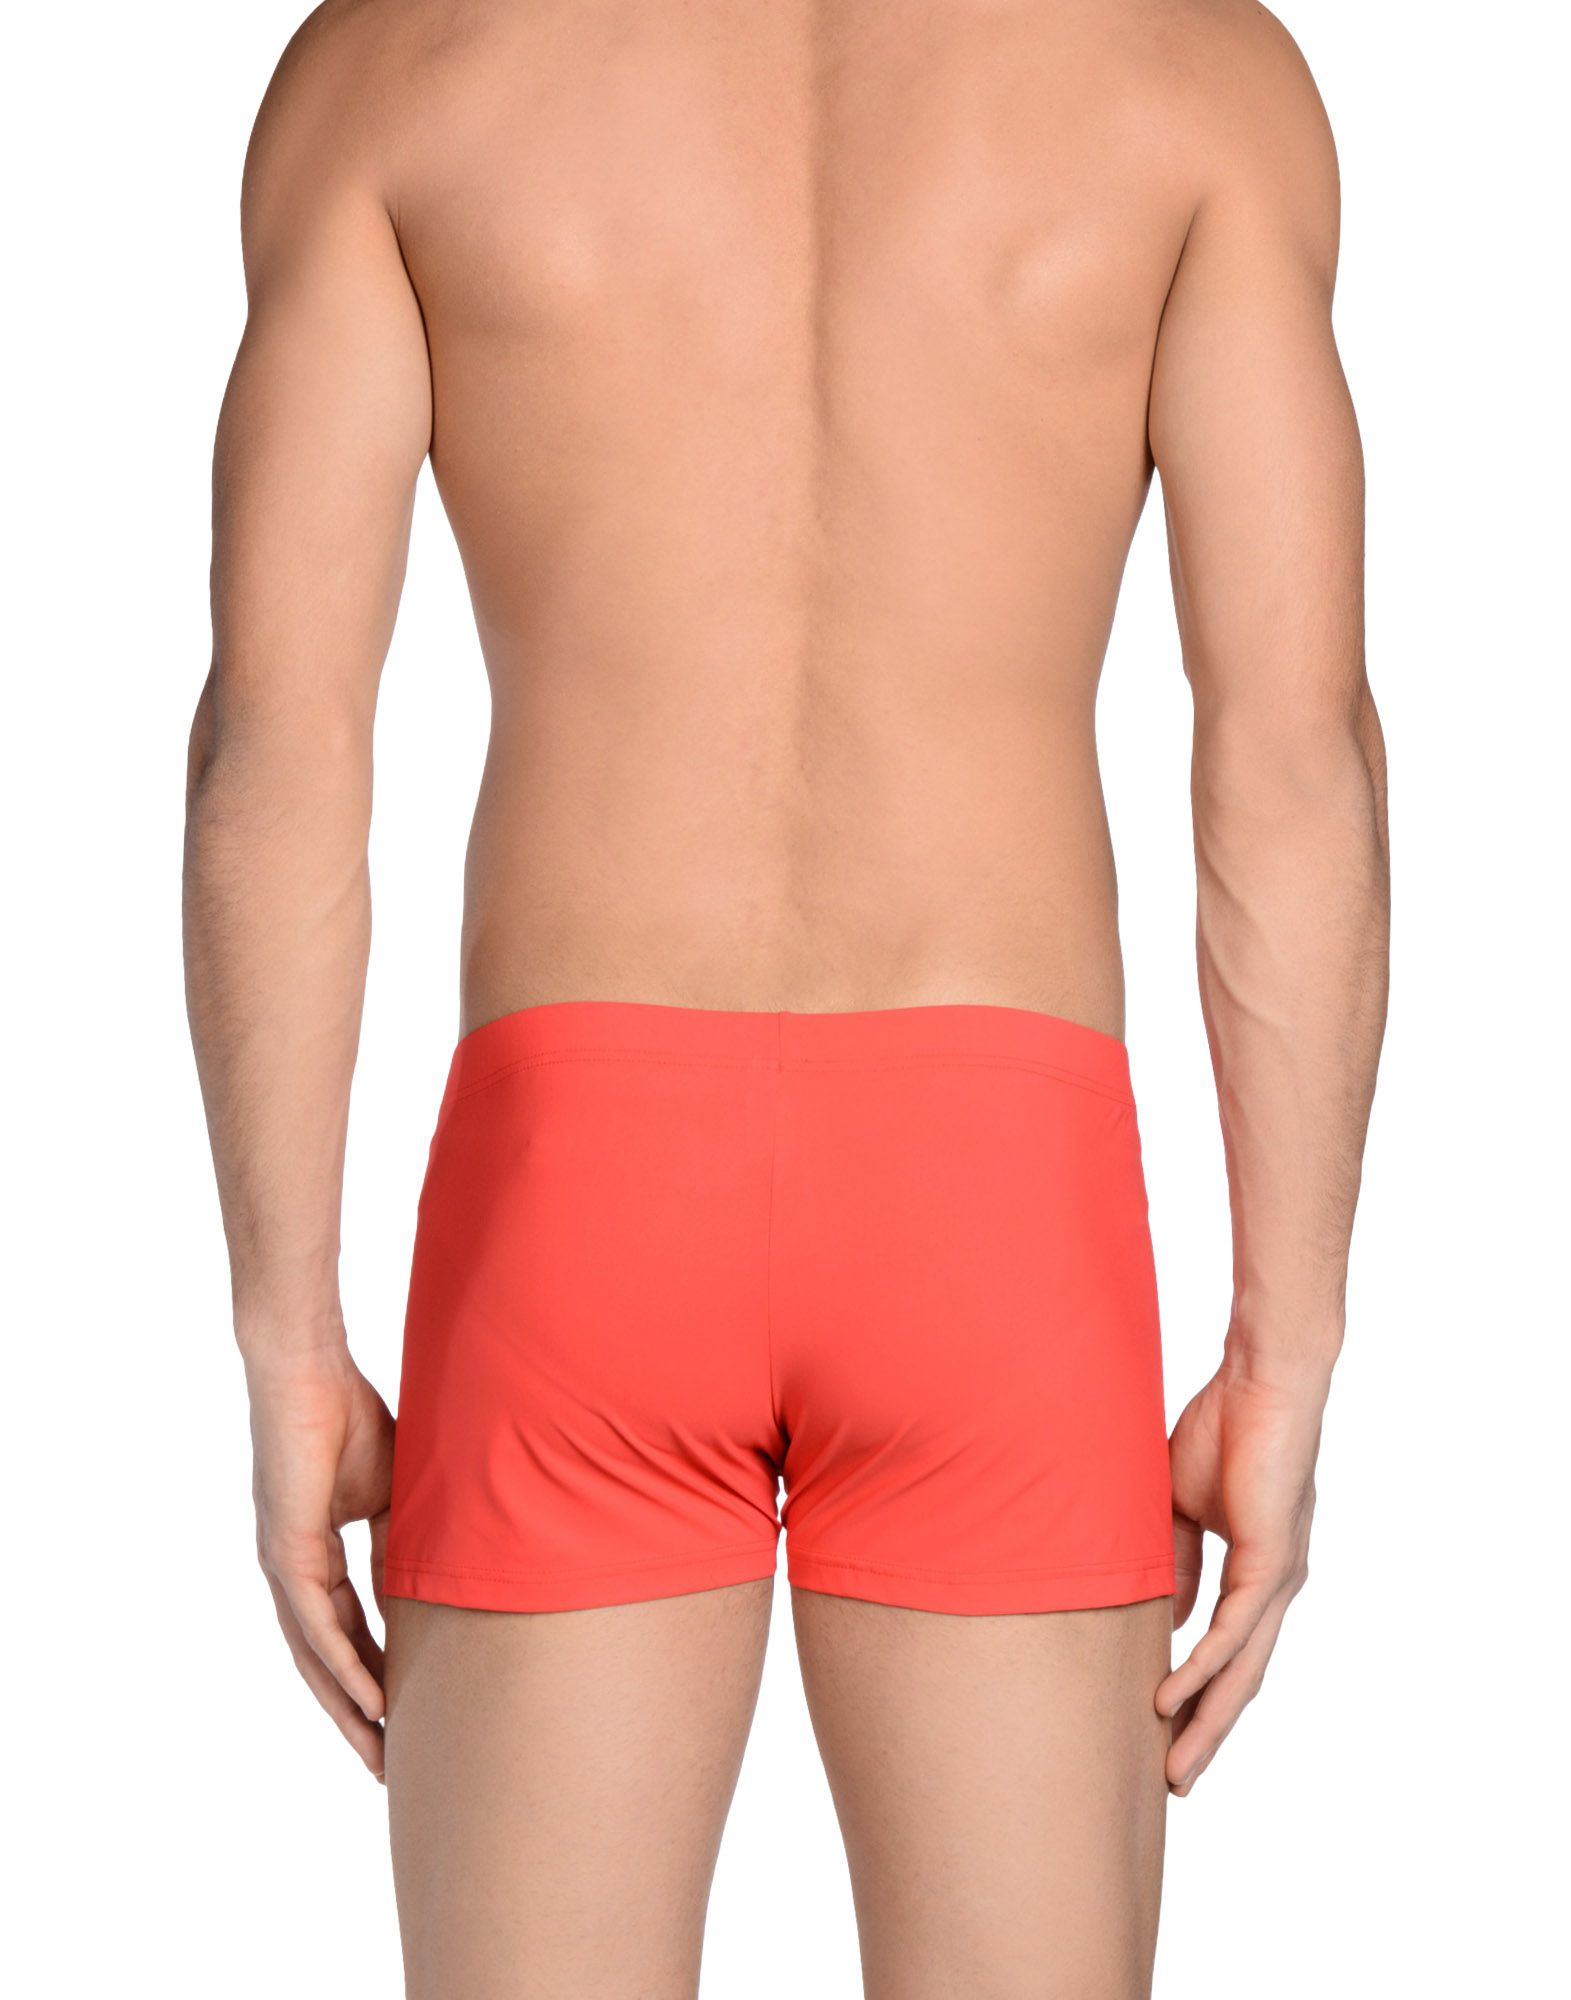 Overstock uses cookies to ensure you get the best experience on our site. Chaps Men's Swimwear Bottom Board Shorts Swim Trunks. Quick View Chetstyle Authorized Men Summer Diving Sea Beach Shorts Swim Trunks Red W SALE ends soon ends in 14 hours. Quick View. Sale $